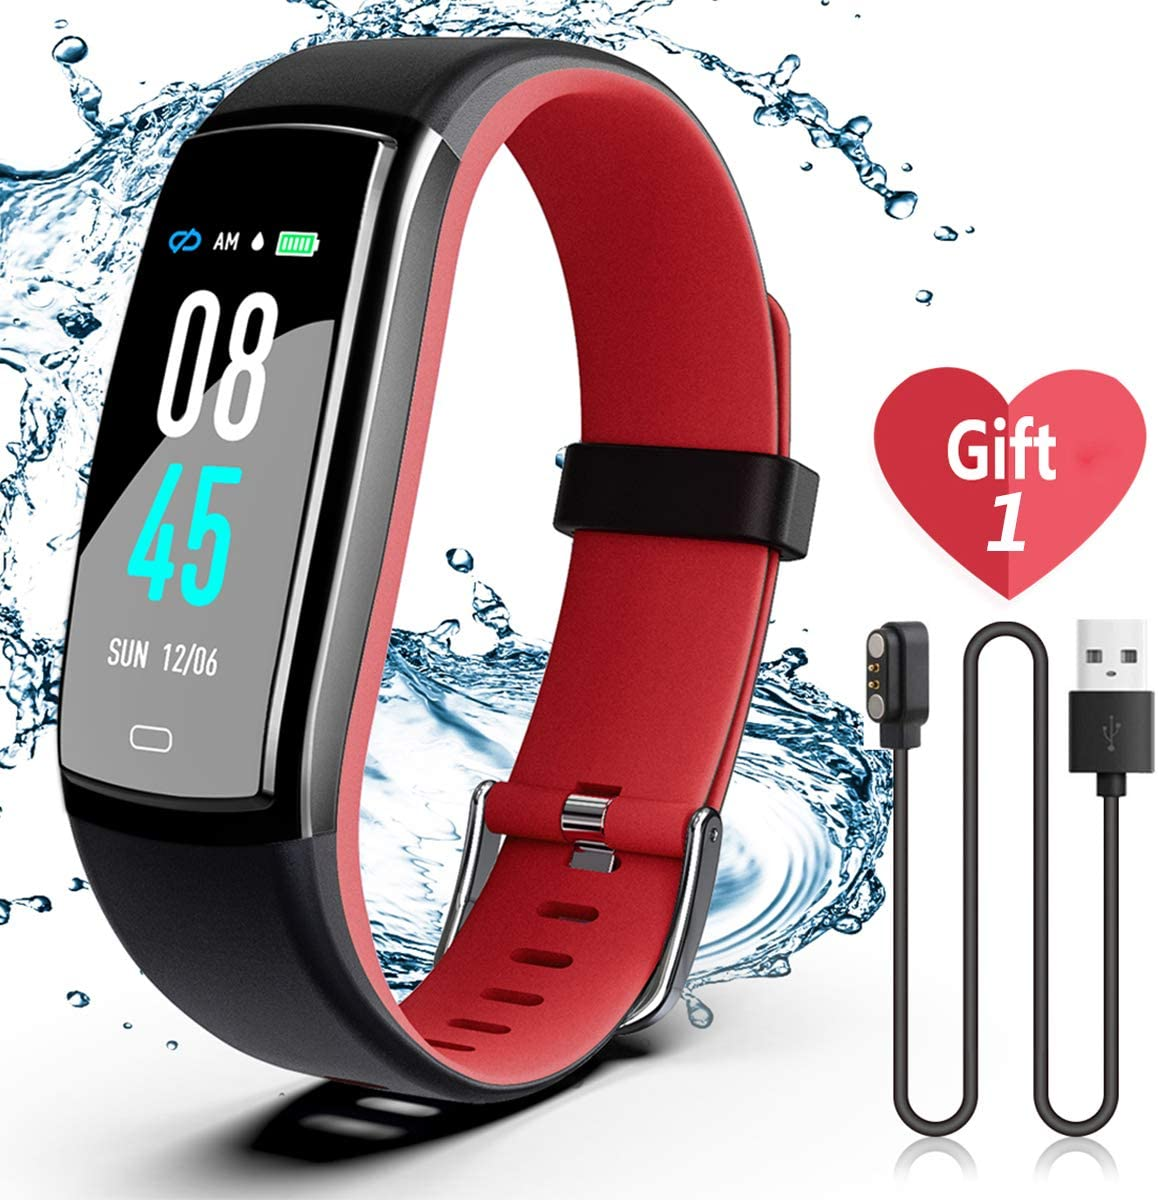 SIKADEER Fitness Tracker, Activity Tracker Watch with Blood Pressure Heart Rate Monitor, IP68 Waterproof Smart Watch with Step Counter, Calorie Counter, Sleep Monitor, Call & SMS